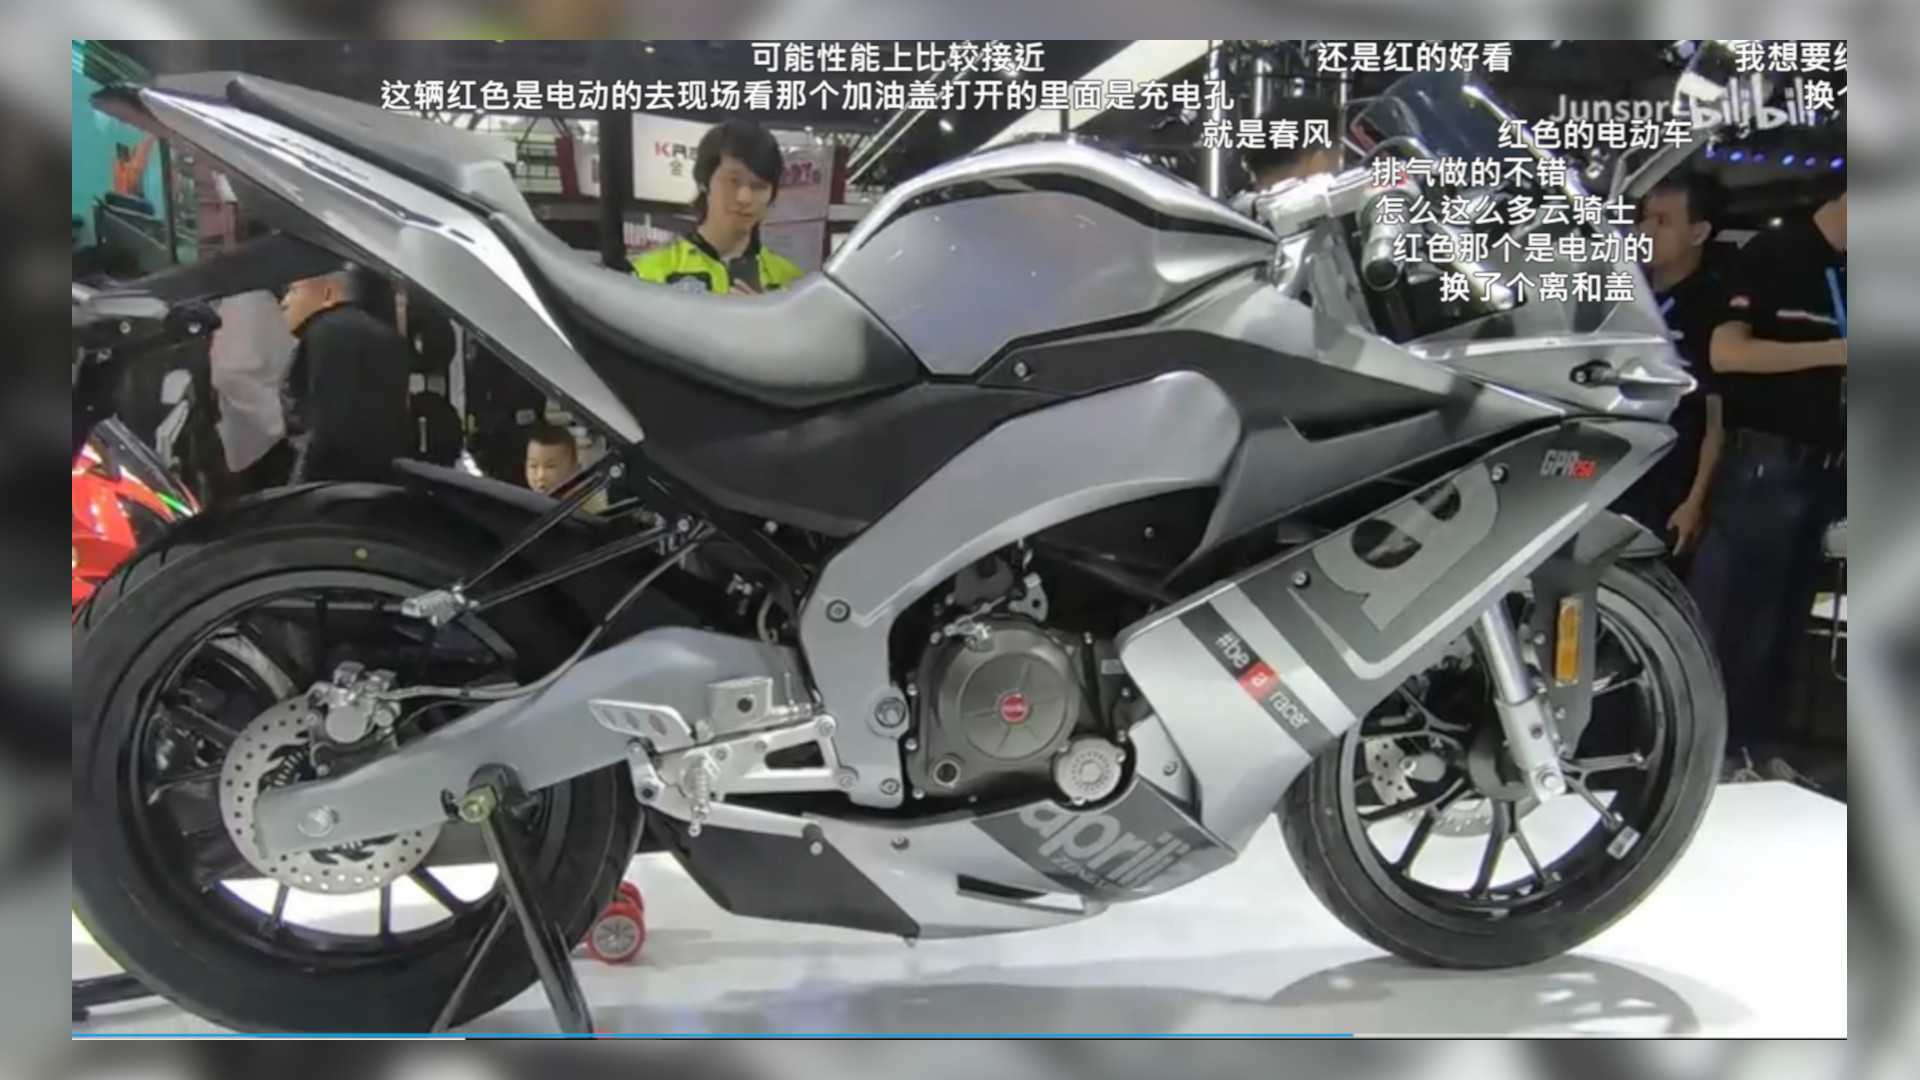 What Are The Chances We'll Get The New Aprilia GPR 250?